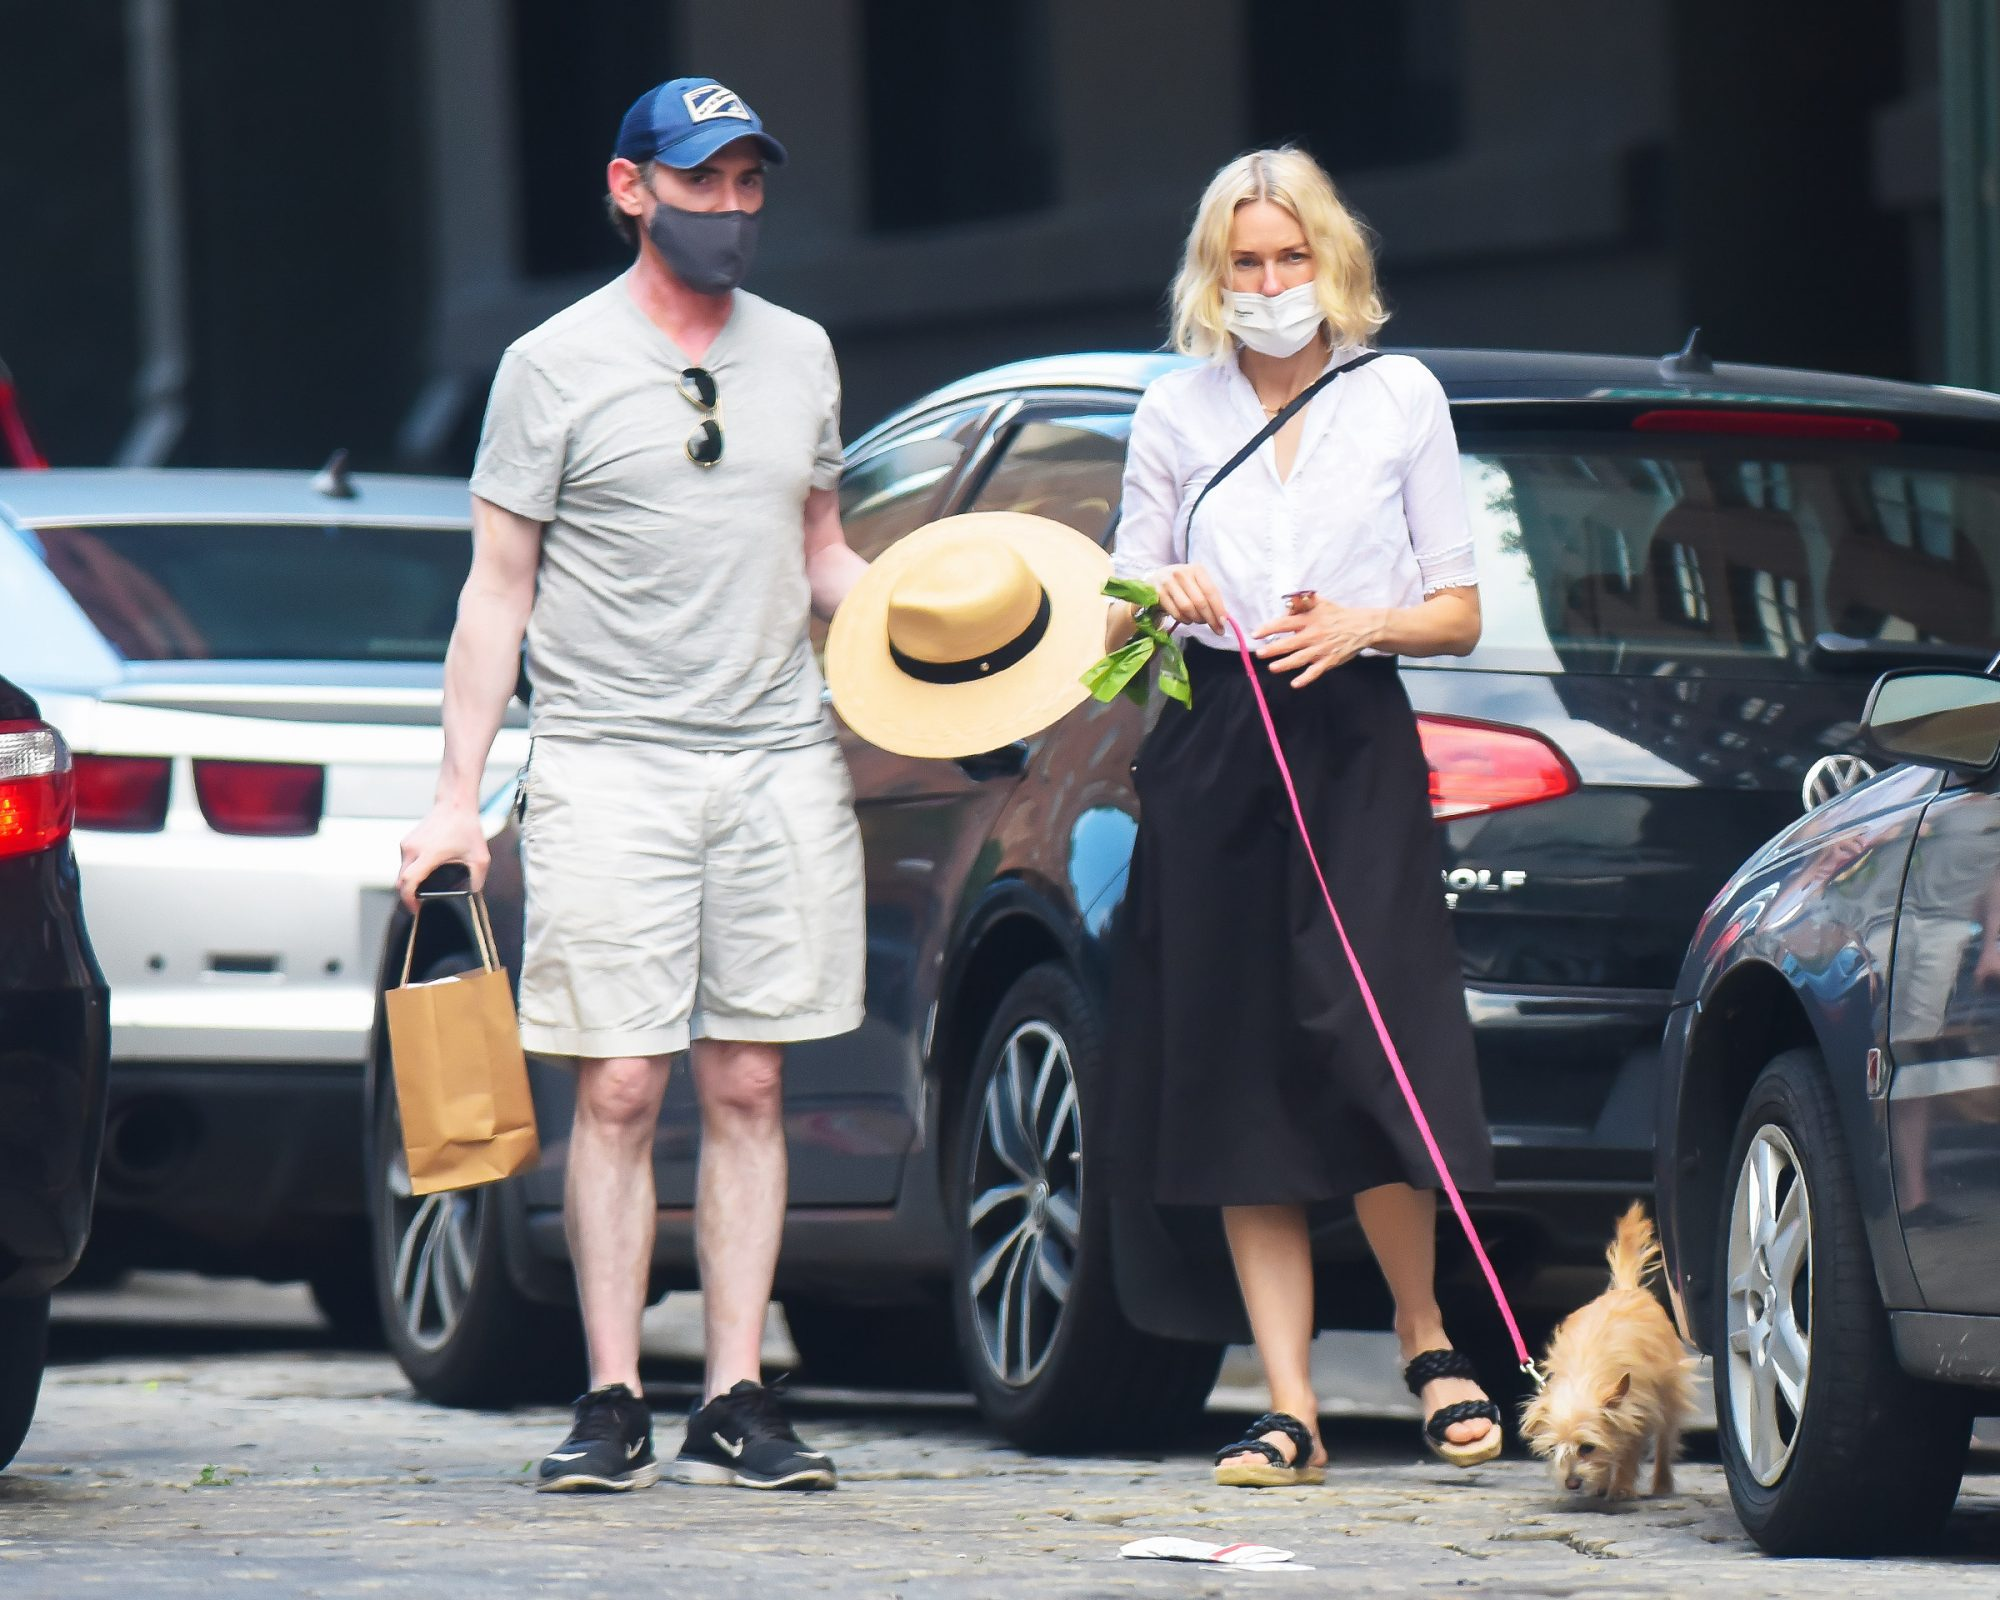 Naomi Watts and Billy Crudup seen out with their dog on June 07, 2021 in New York City